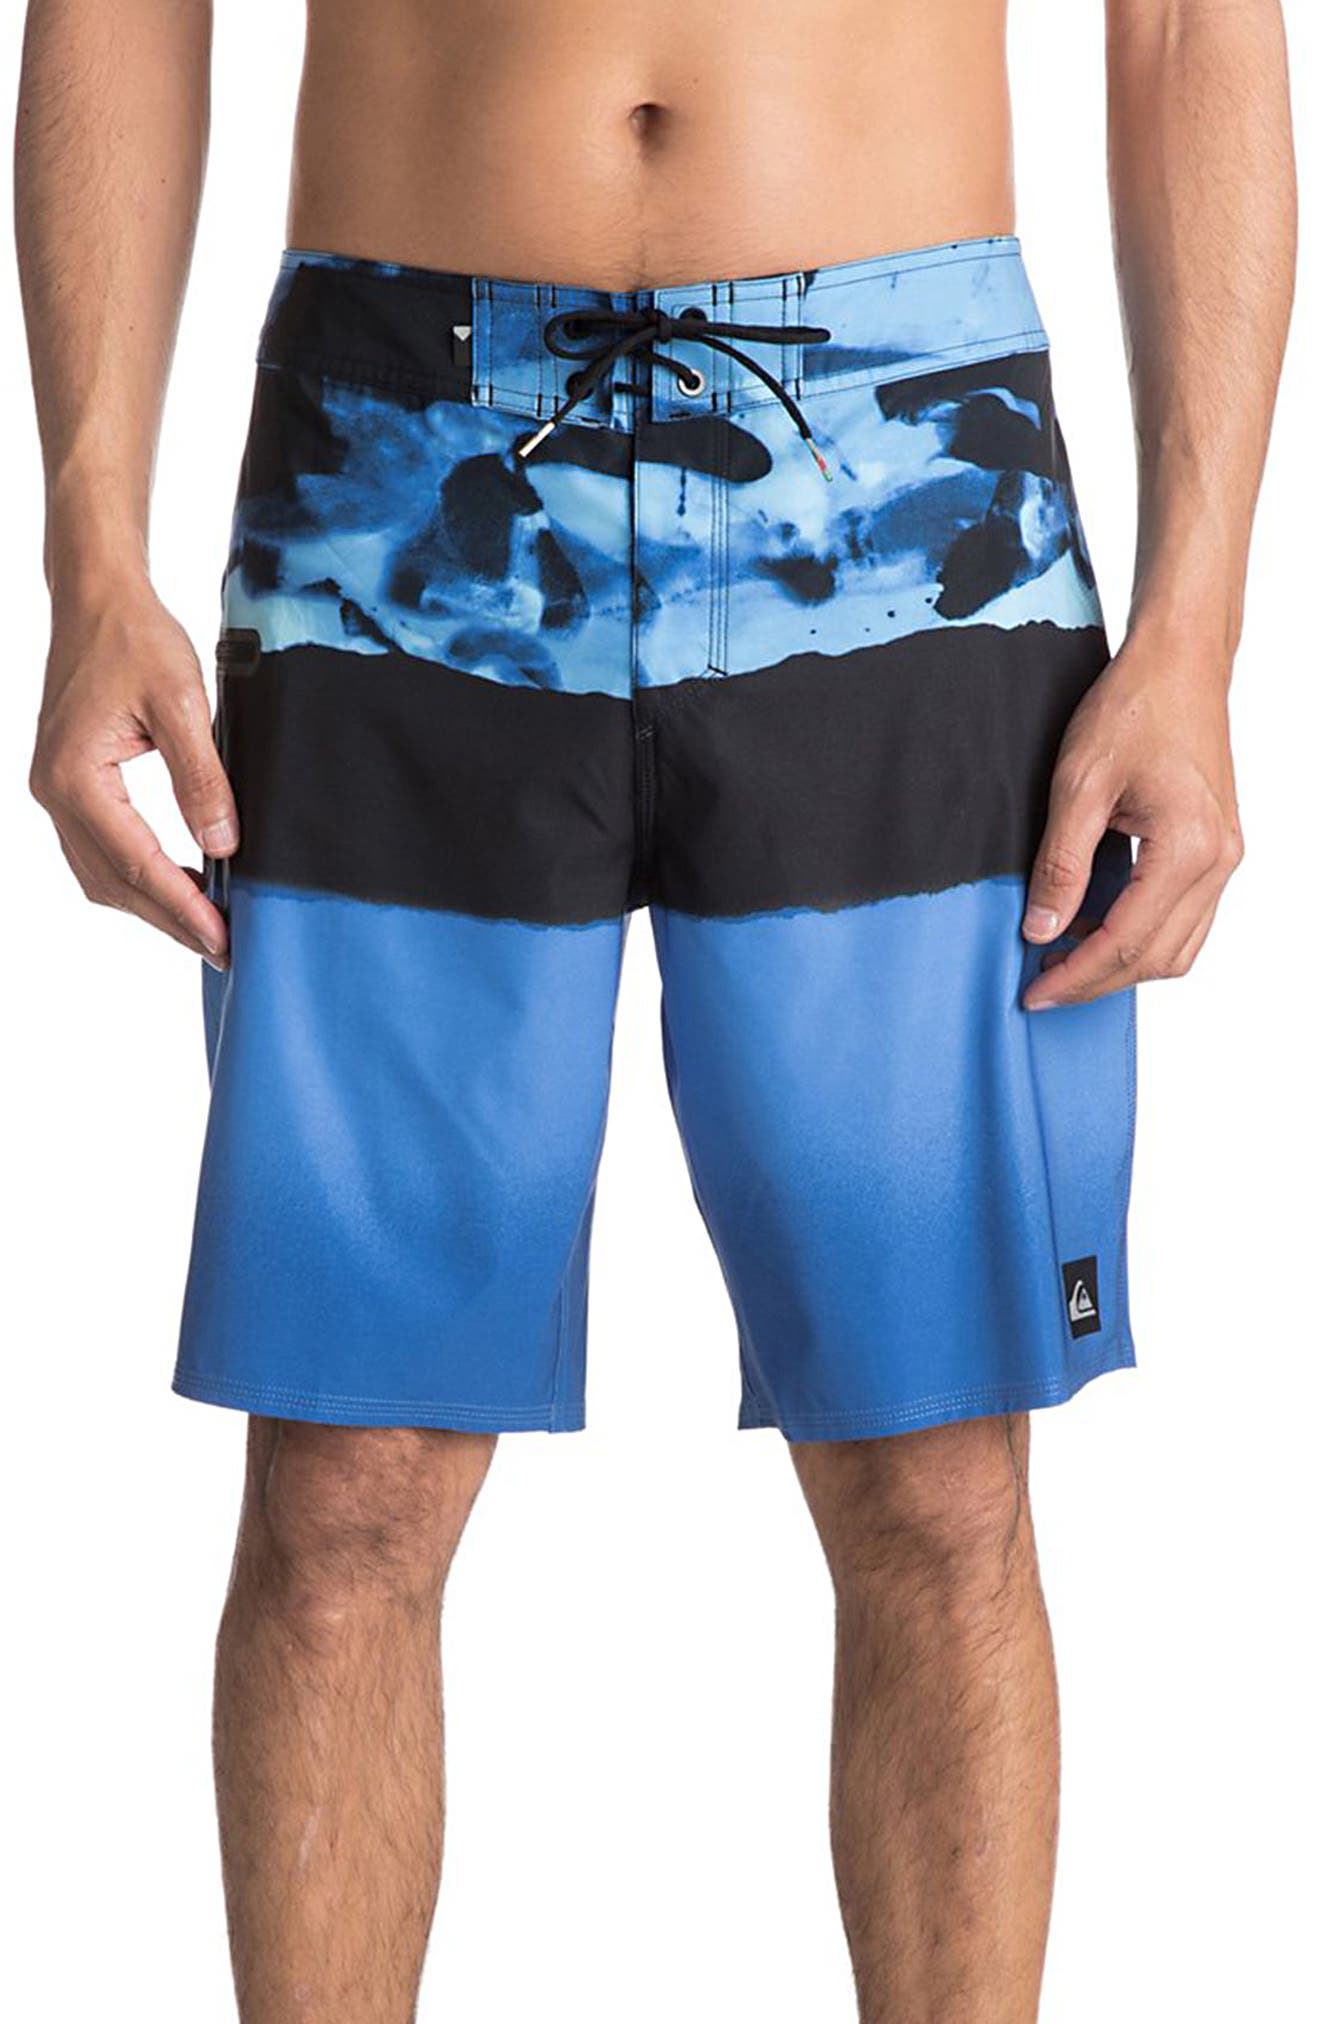 QUIKSILVER Blocked Resin Board Shorts